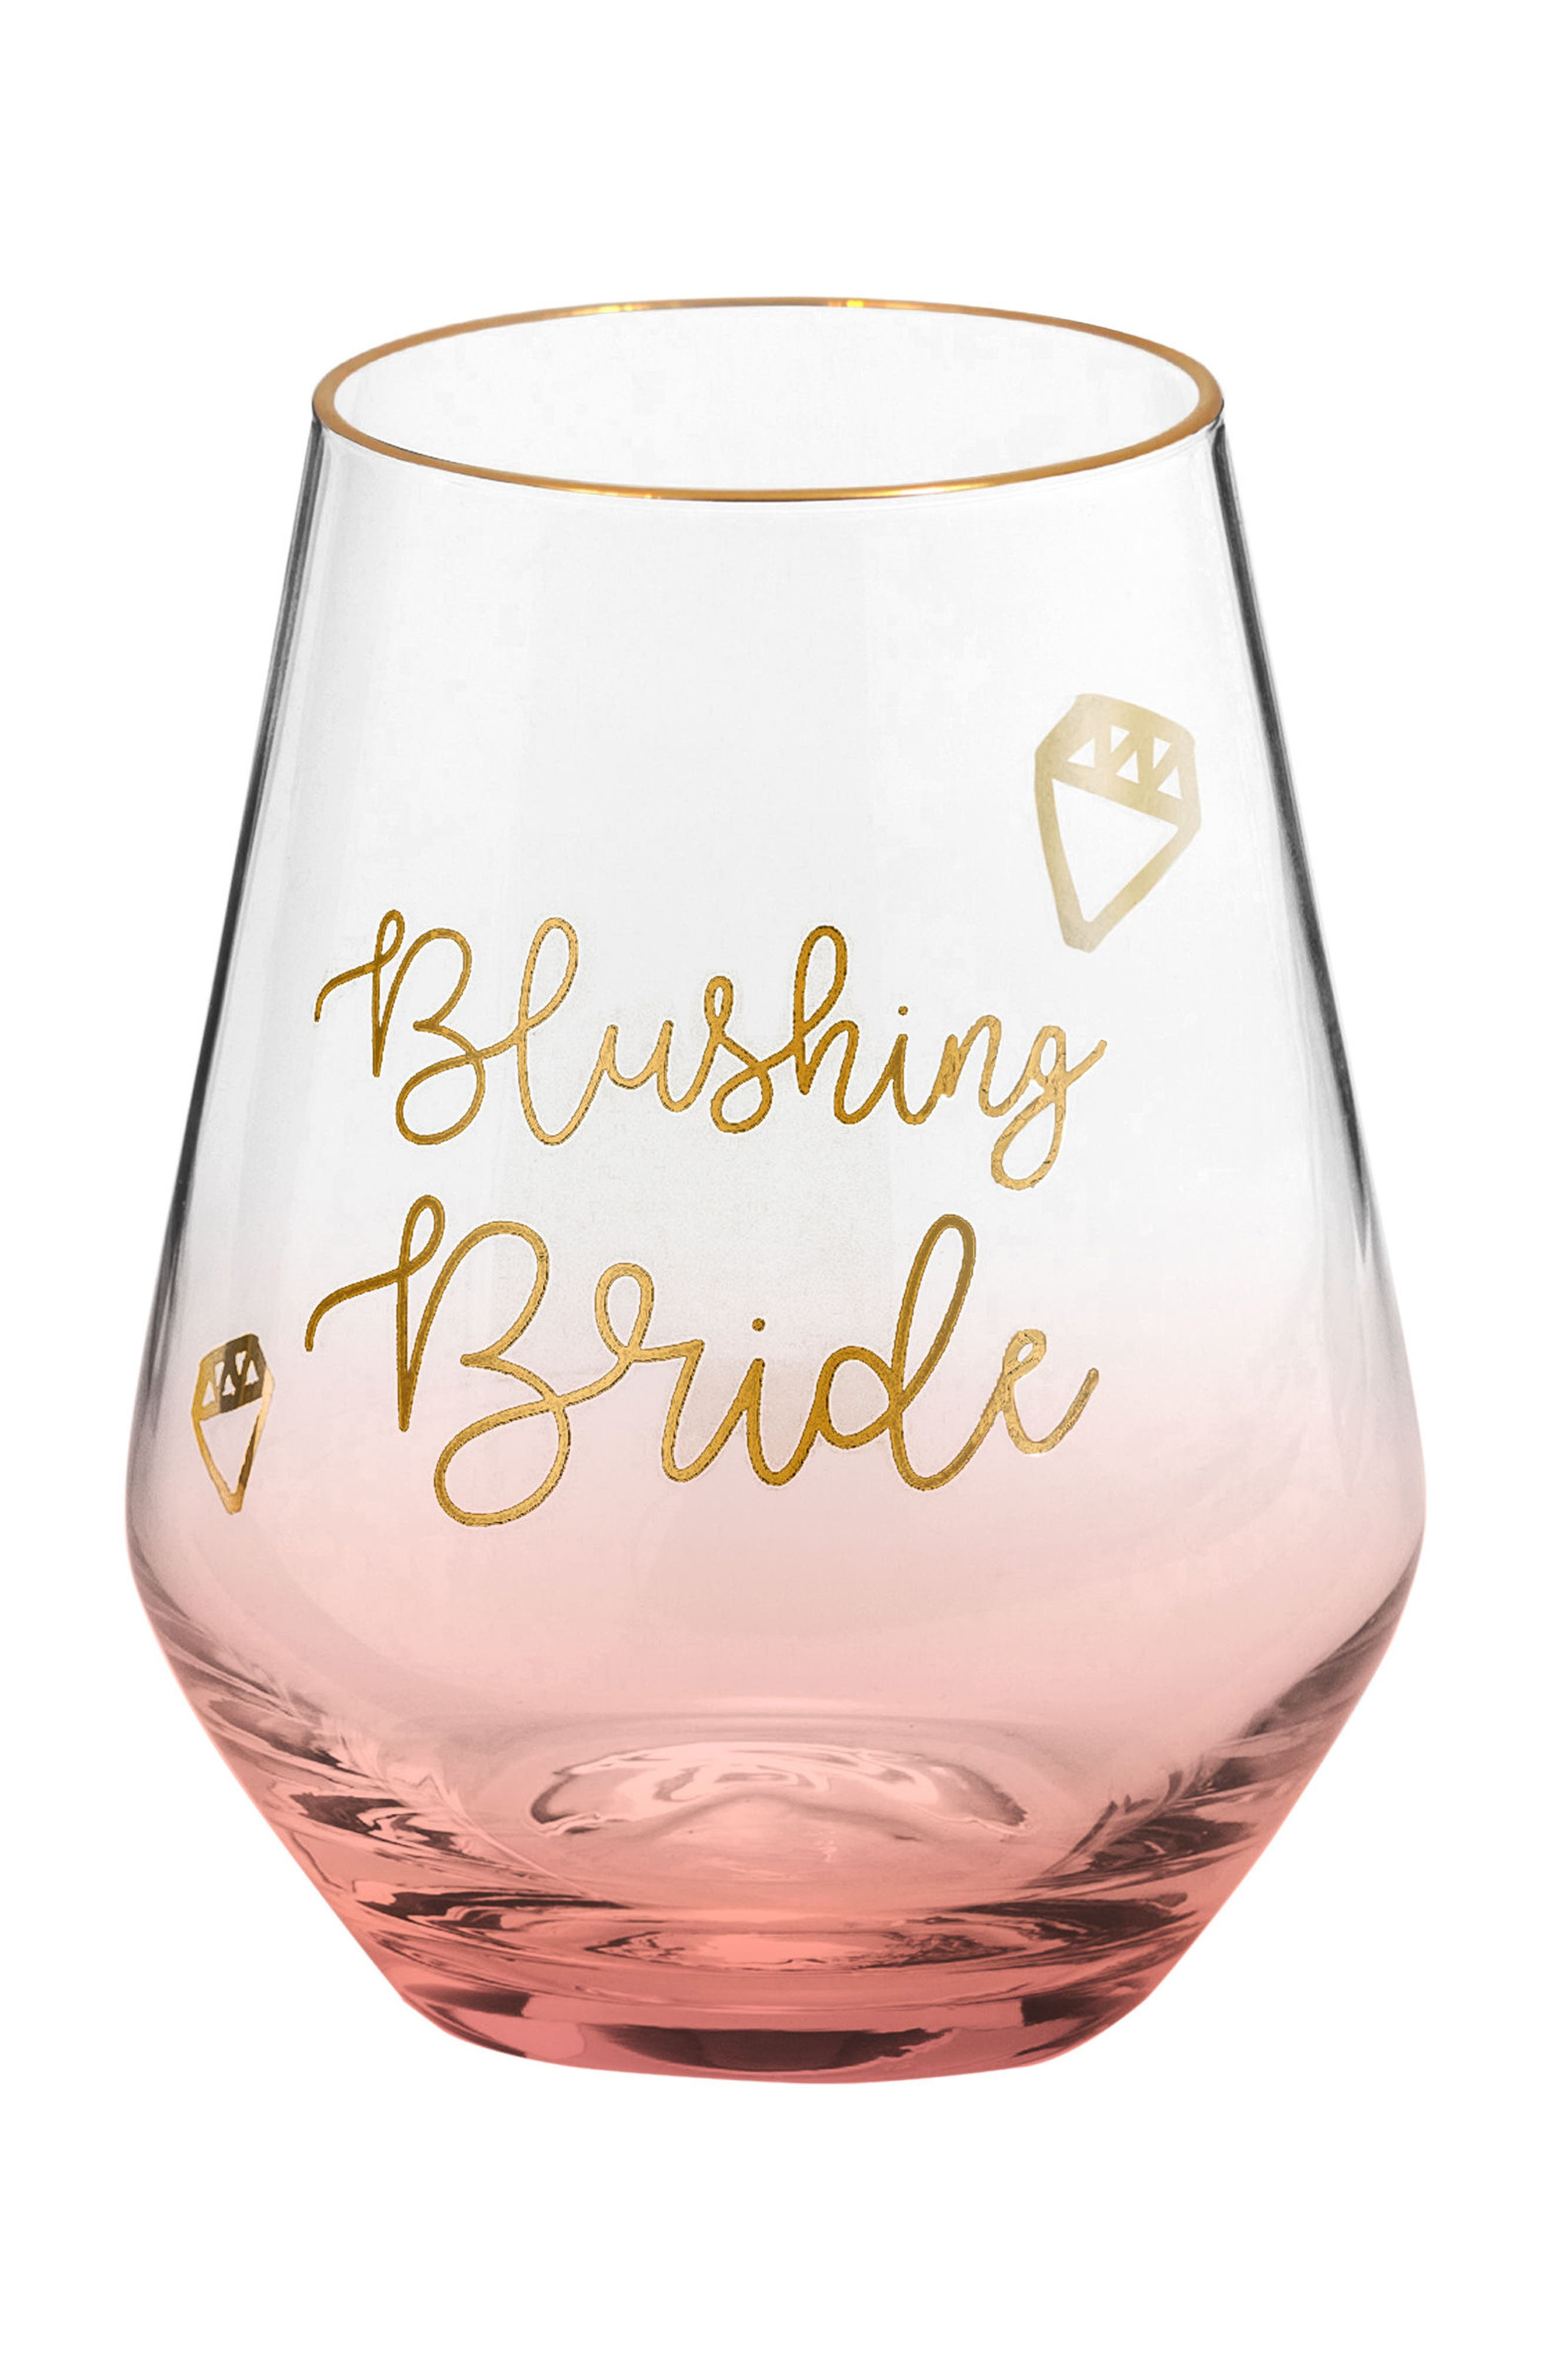 Blushing Bride Stemless Wine Glass,                         Main,                         color, 650